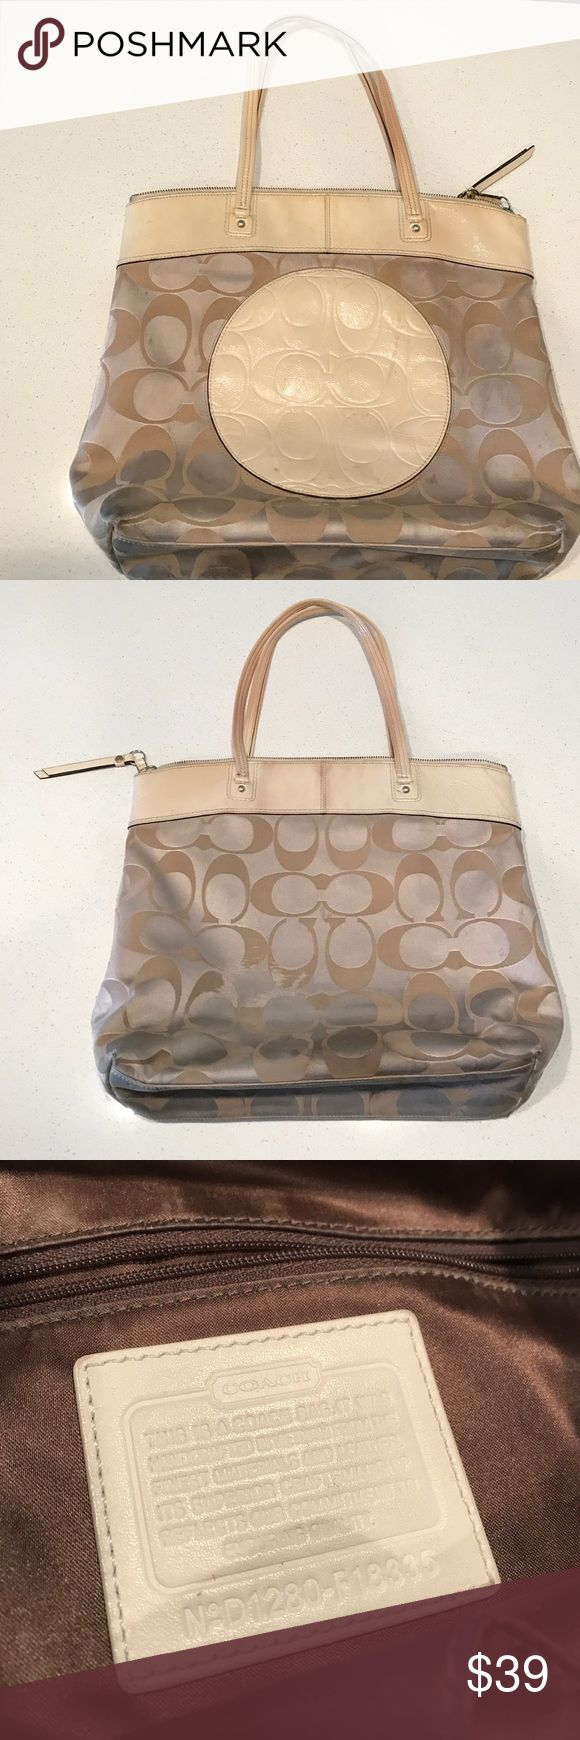 Large Coach tote bag with leather trim Large Coach cream tote bag with leather trim.  Bag has a good amount of wear but has been well taken-care-of.  There are no rips or holes inside or out. Coach Bags Totes